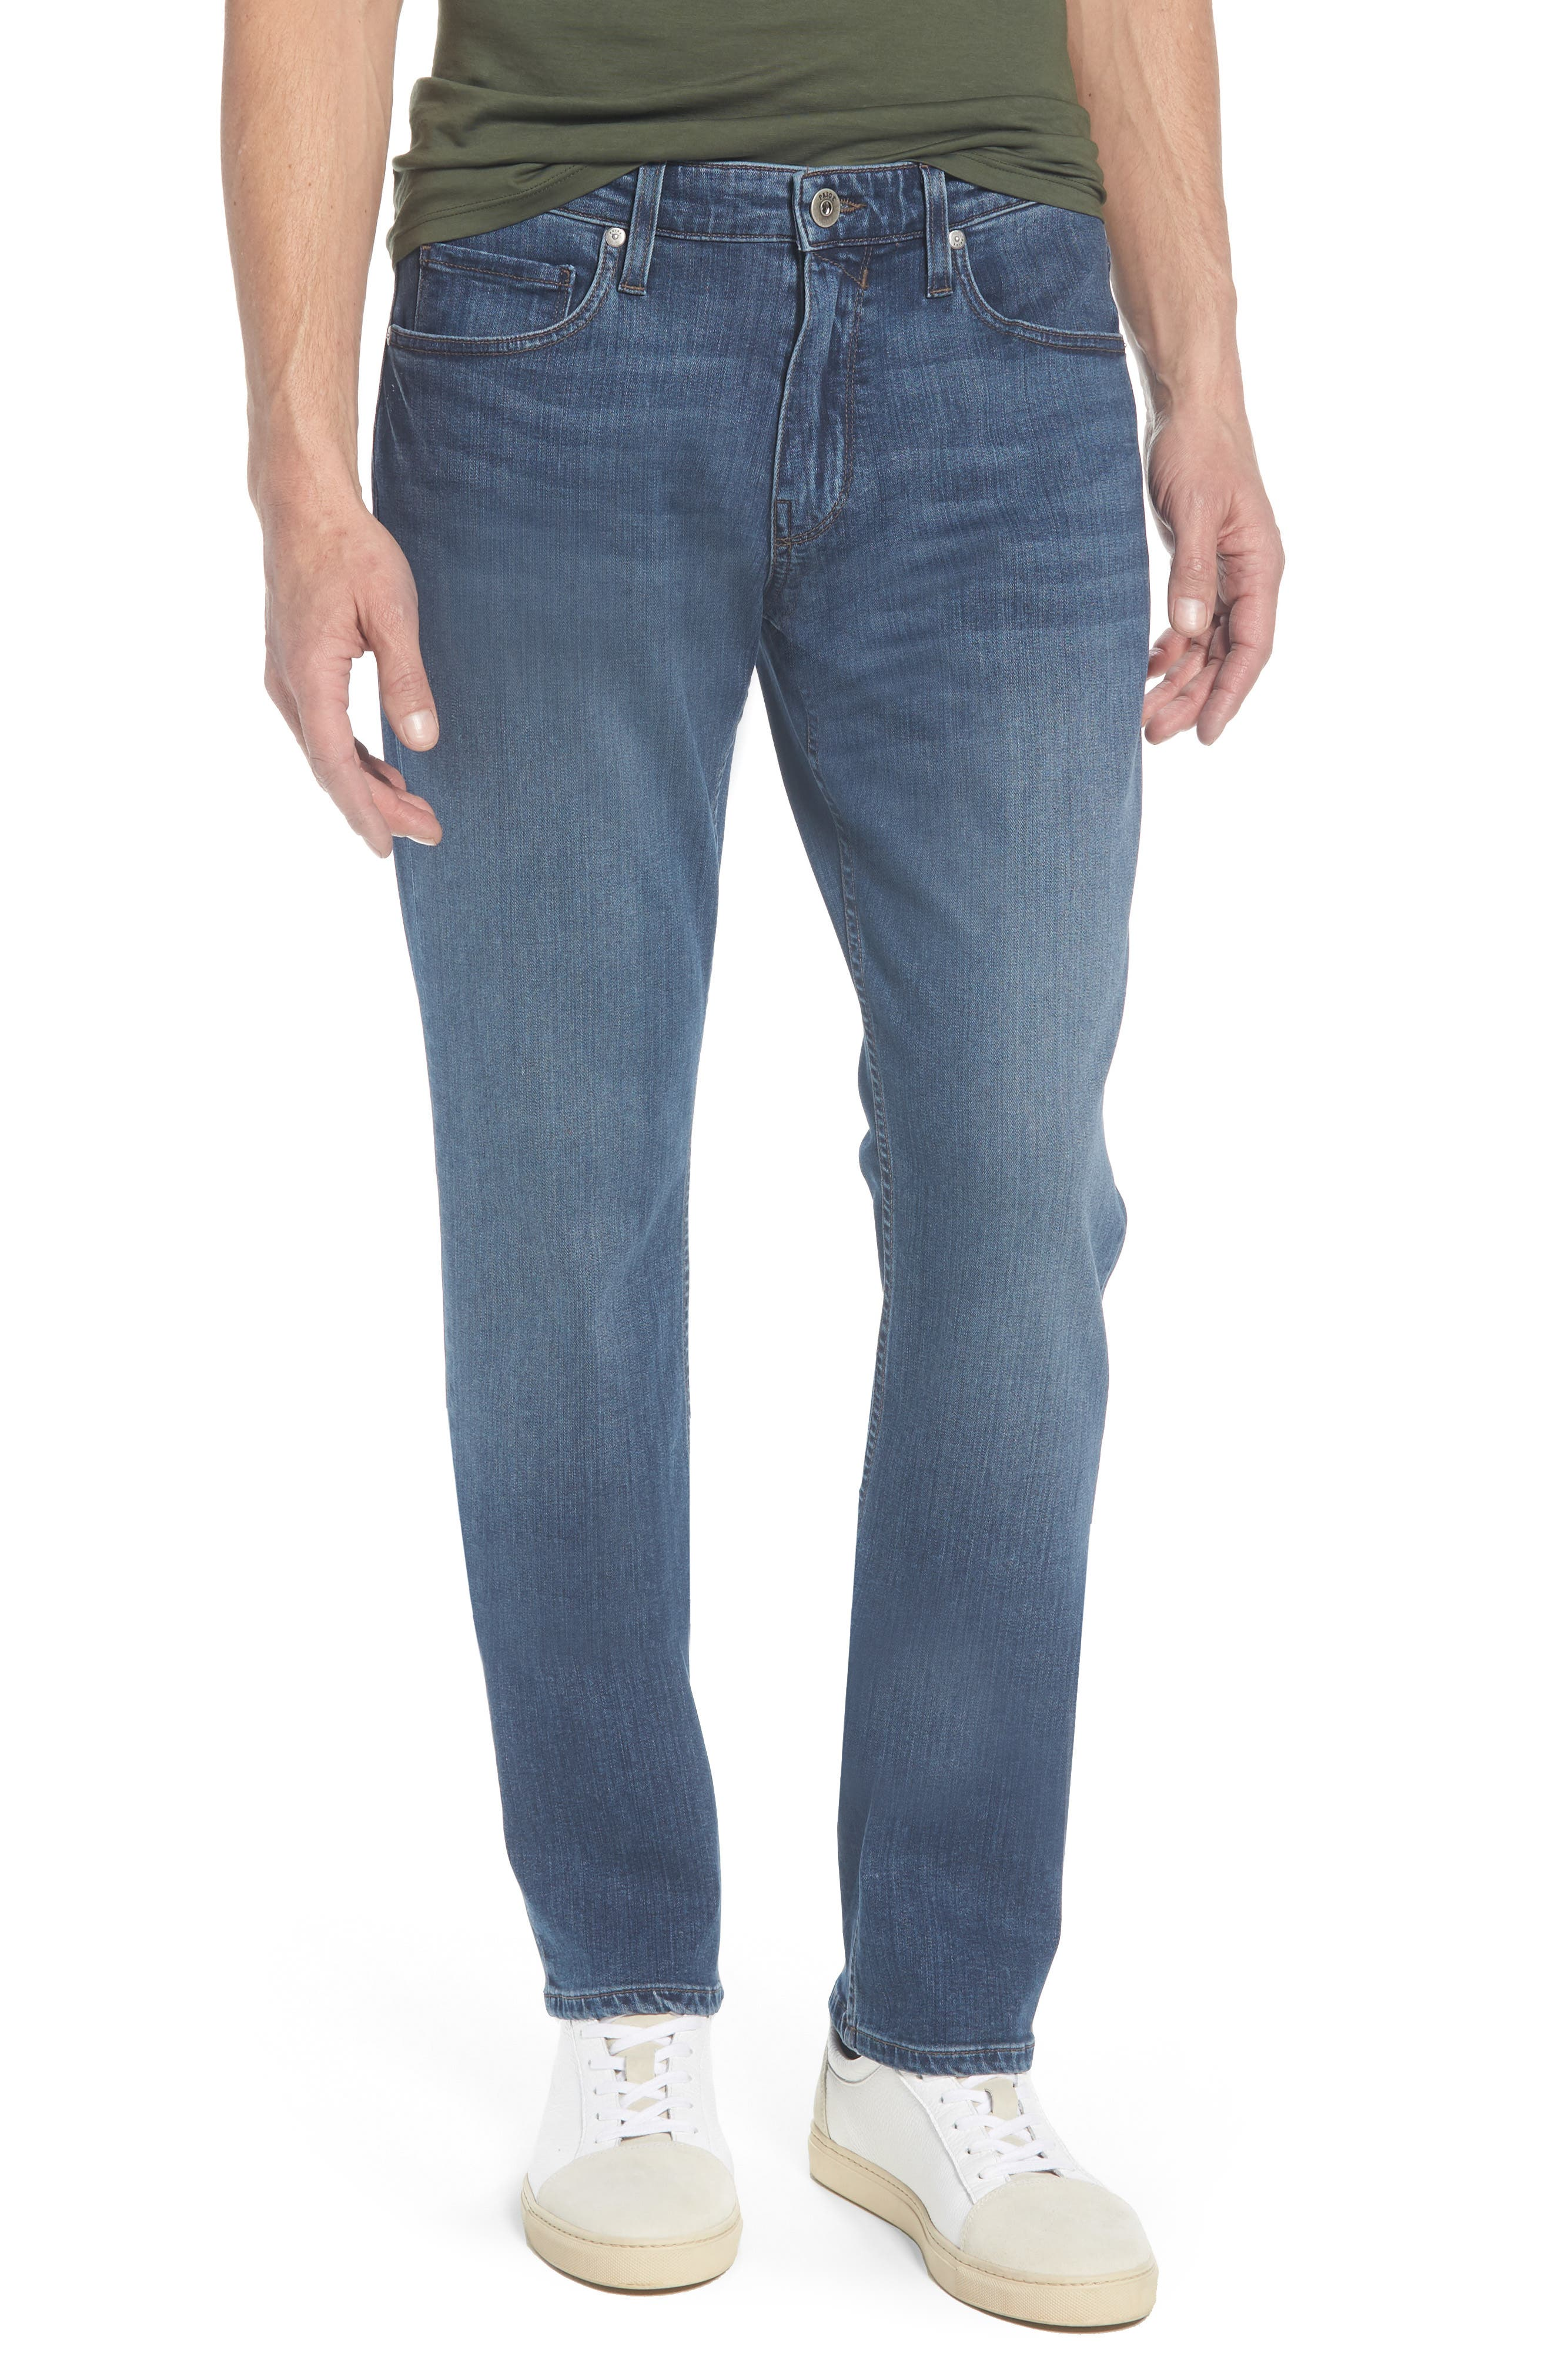 PAIGE,                             Federal Slim Straight Leg Jeans,                             Main thumbnail 1, color,                             400